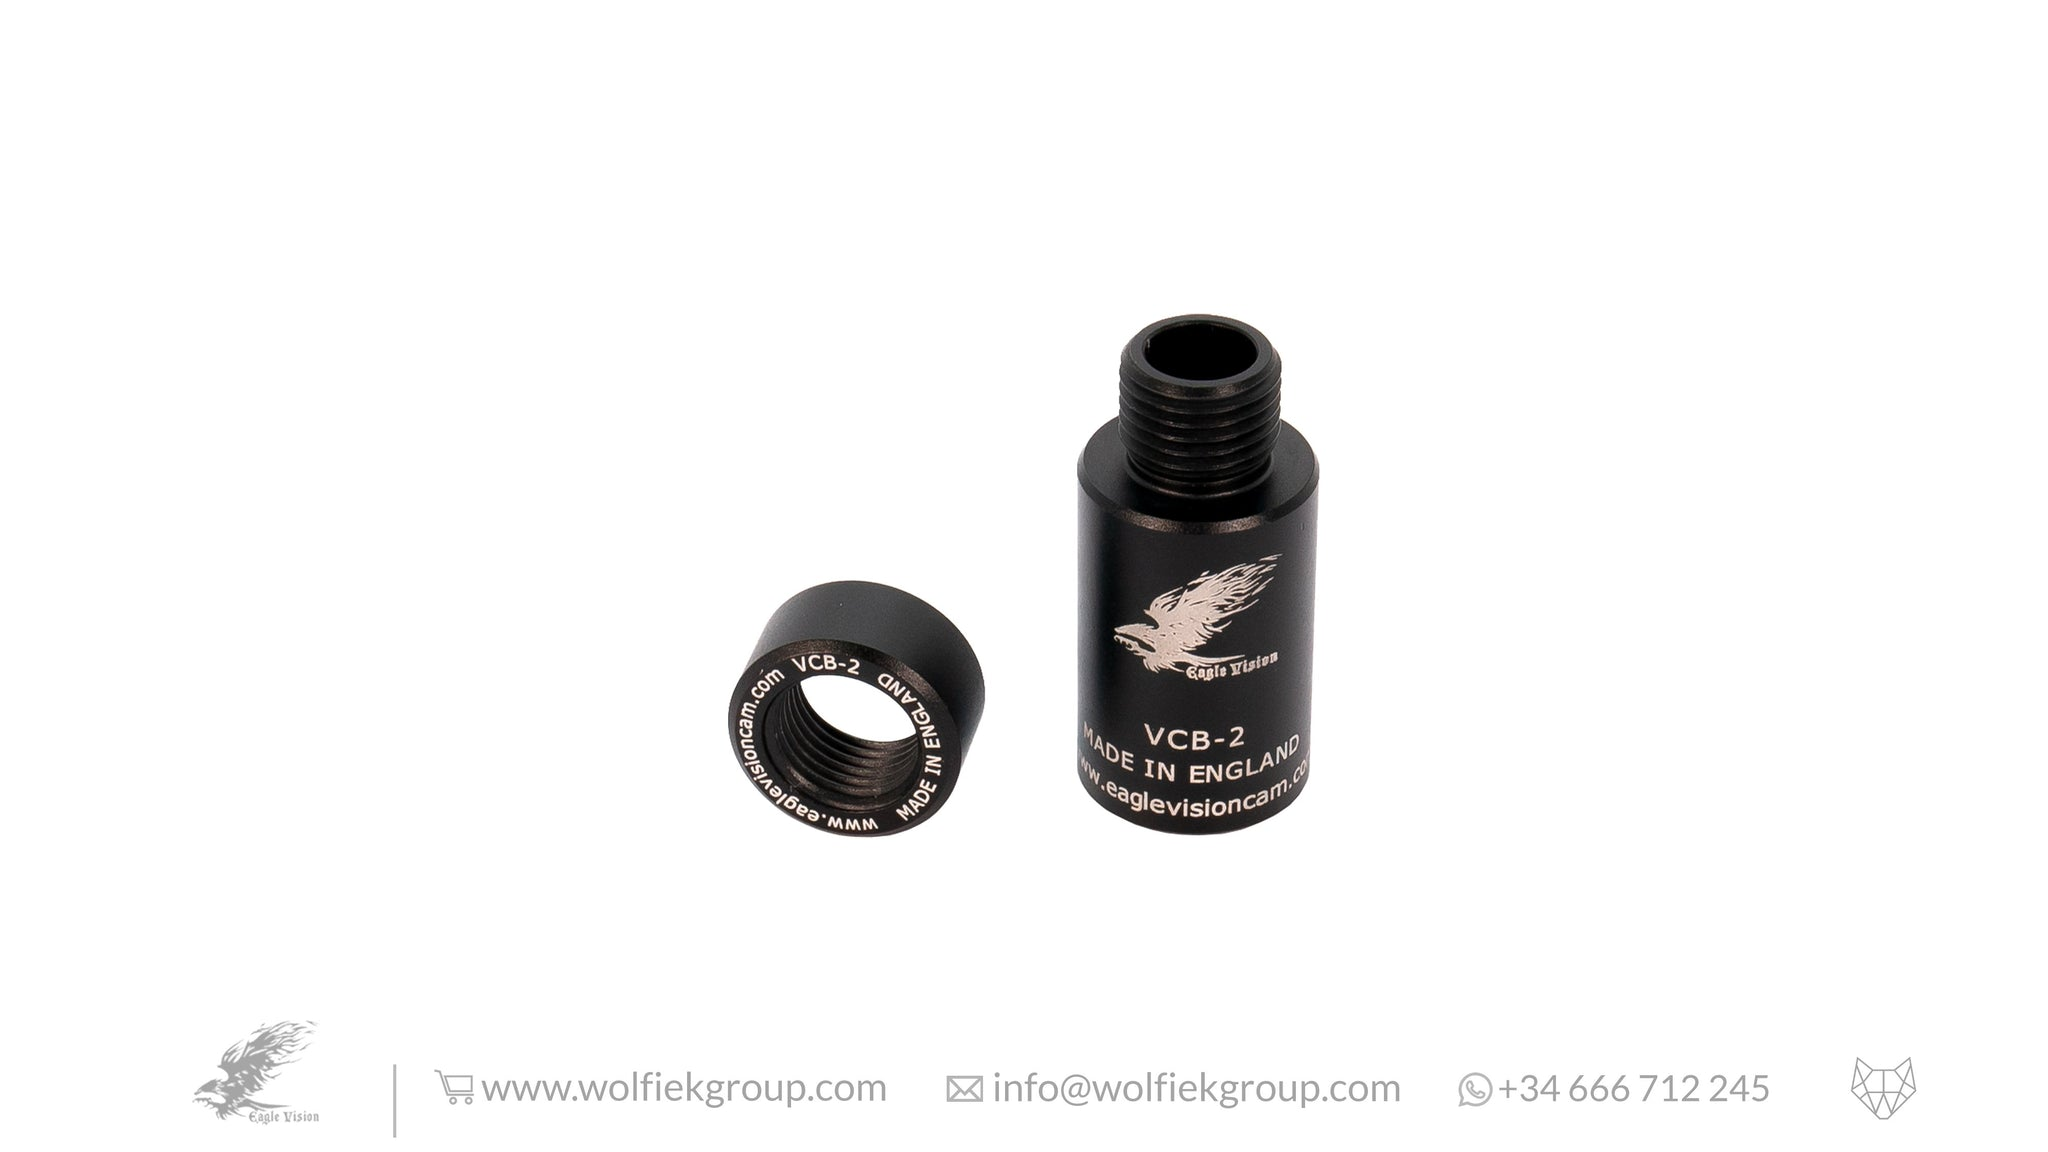 EAGLE VISION · 1/2 UNF BARREL ADAPTOR (VCB-2) FOR LESHIY 2